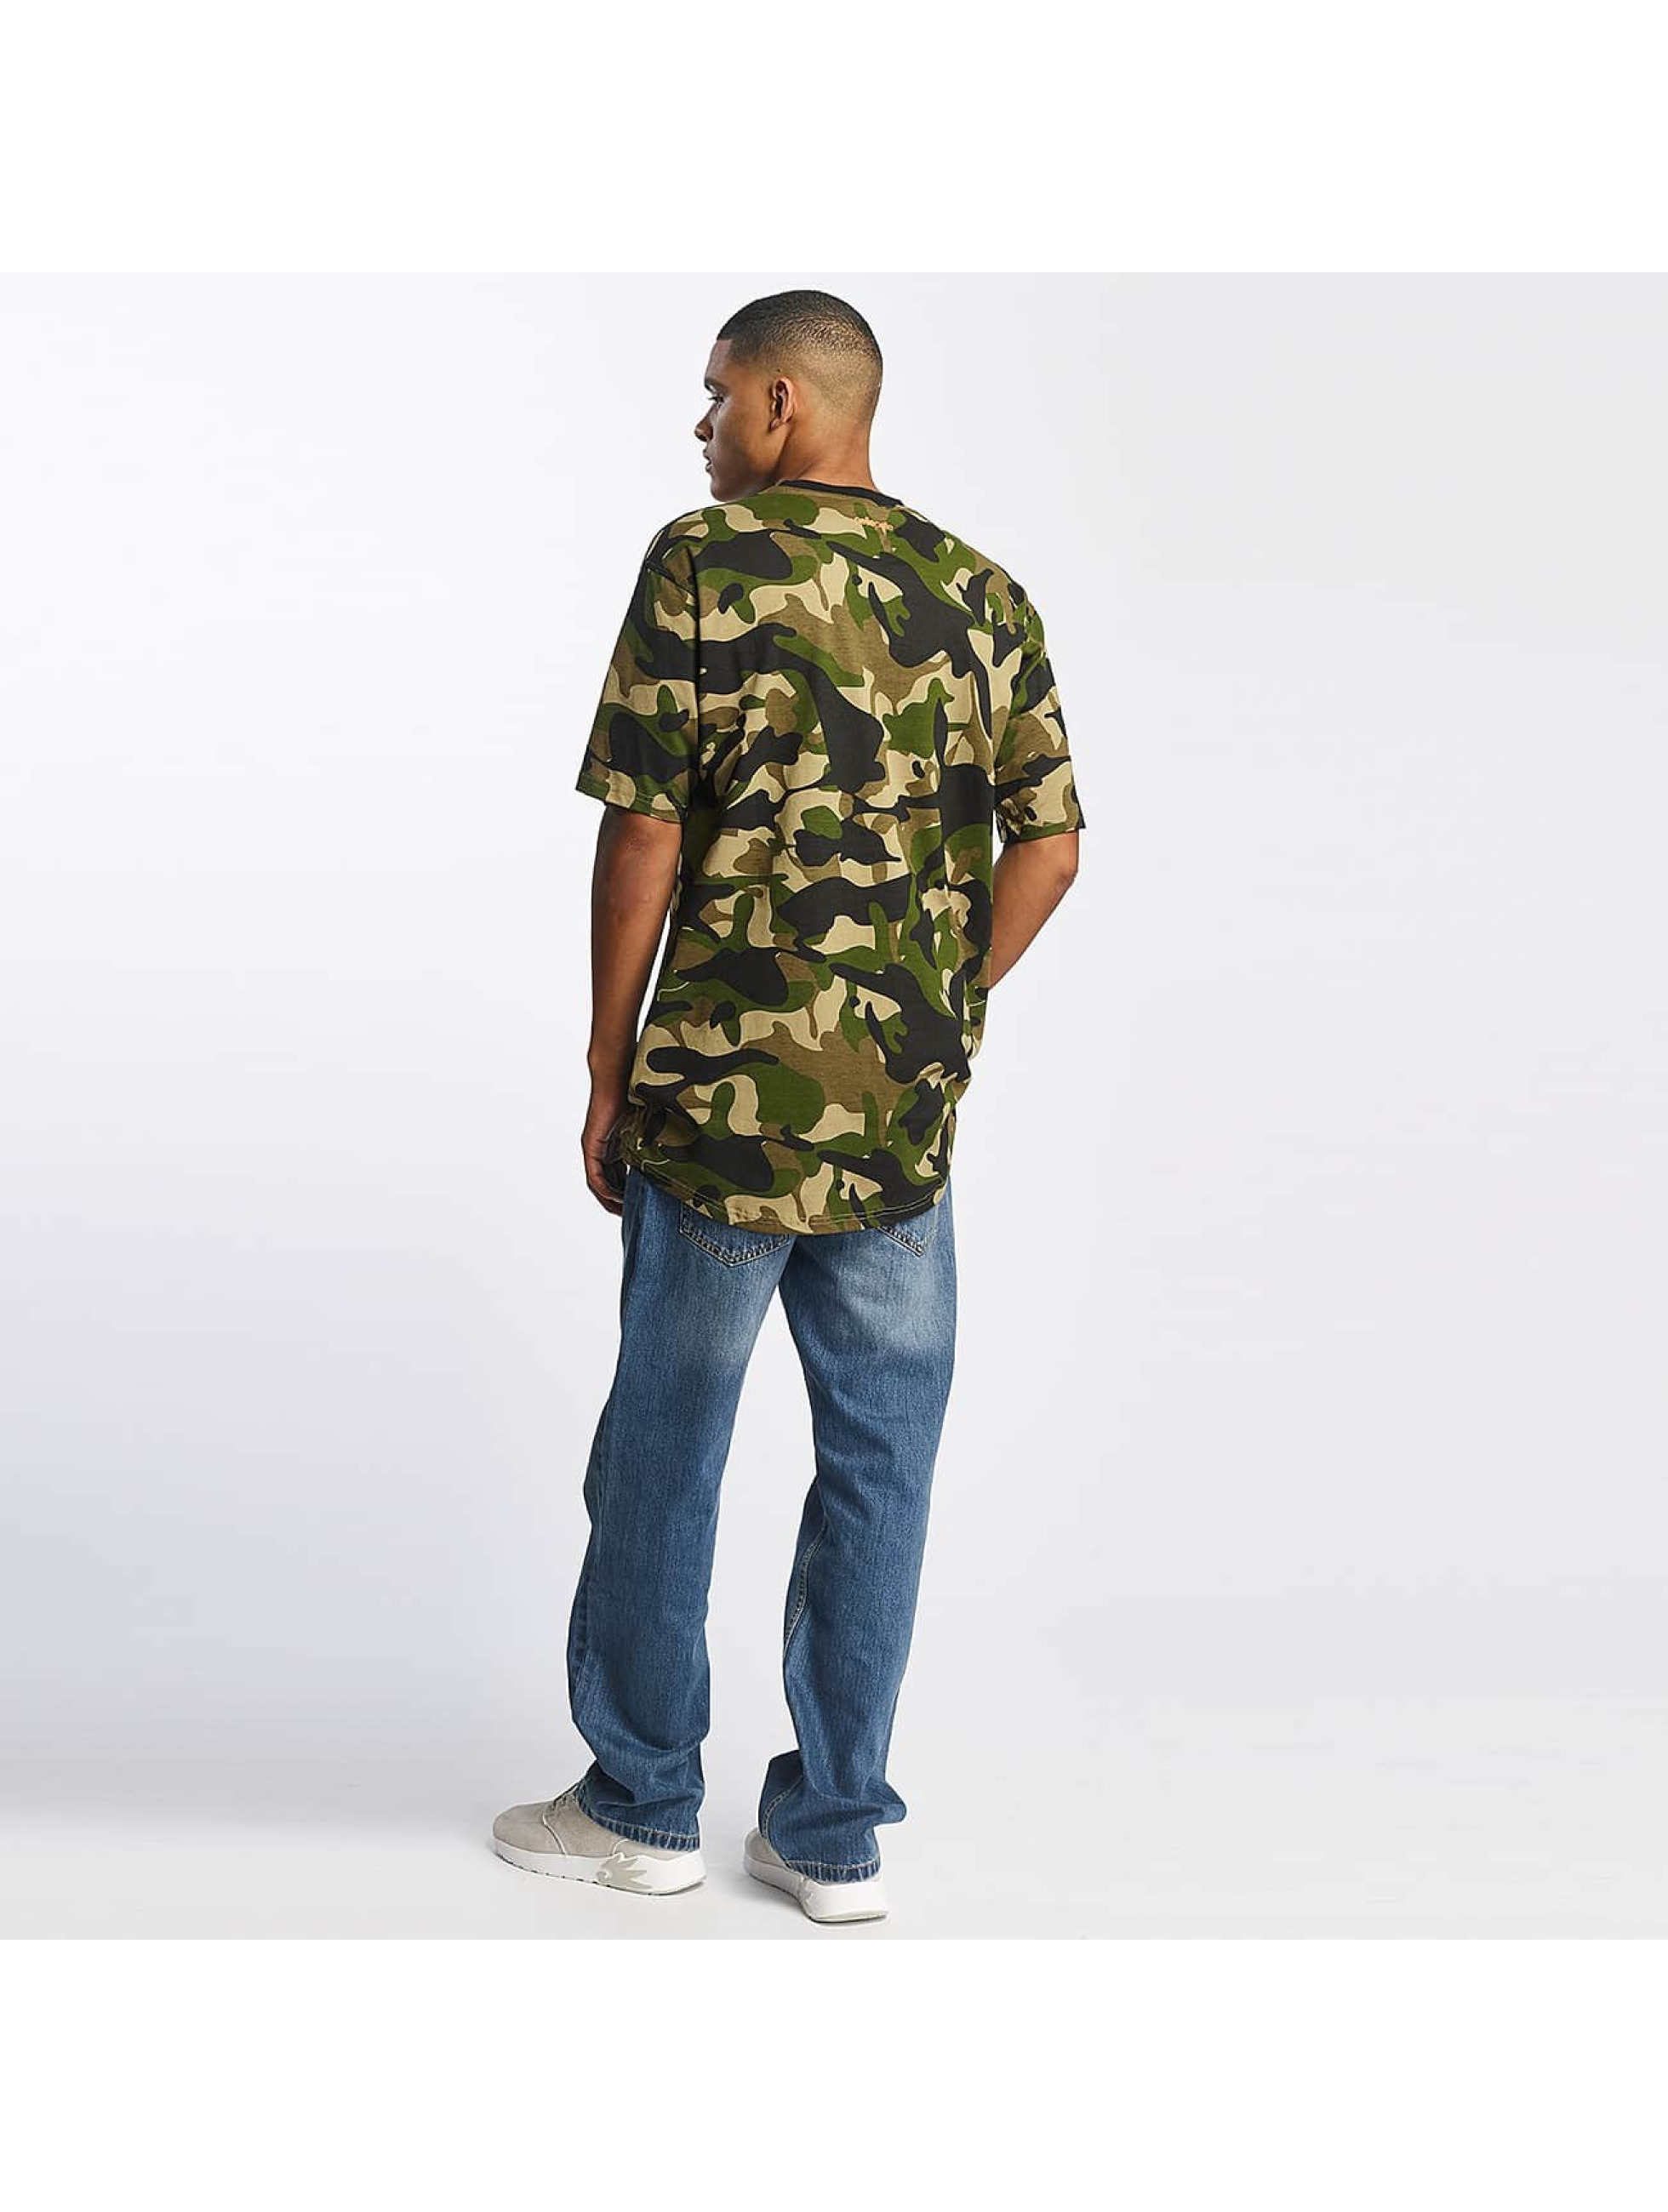 pelle pelle herren t shirt full camo icon in camouflage 391321. Black Bedroom Furniture Sets. Home Design Ideas